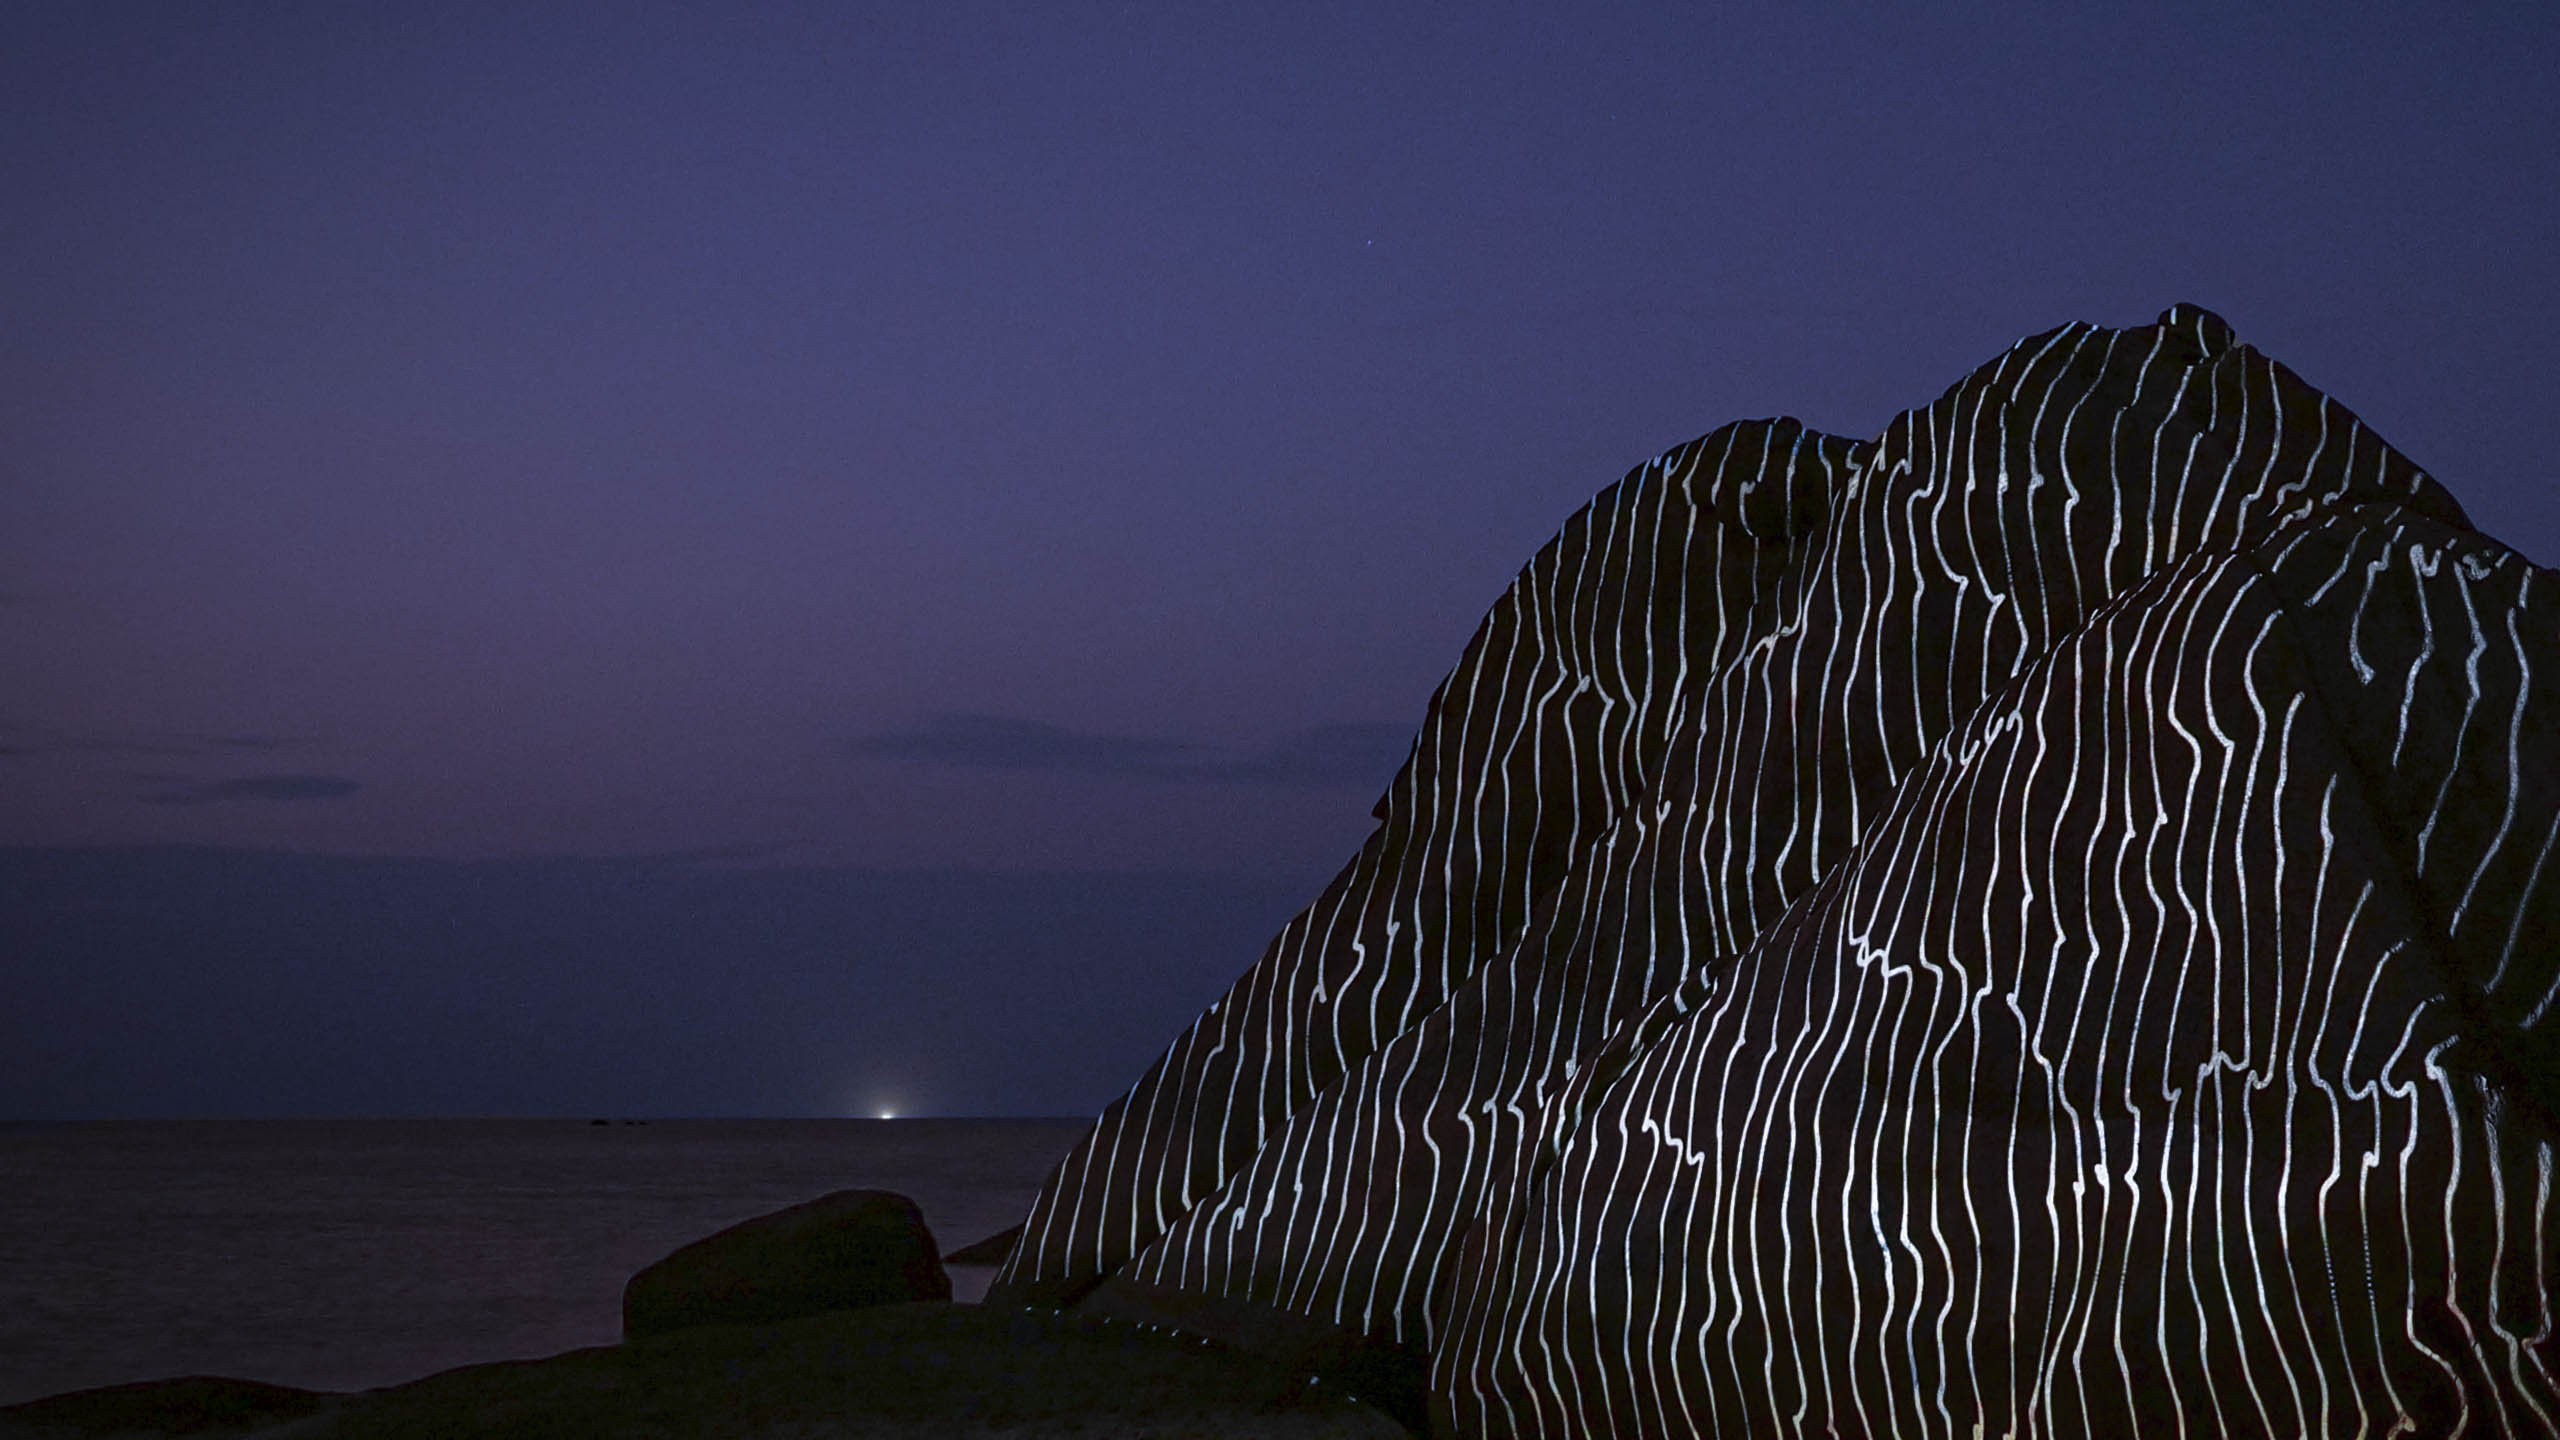 abstract light art, 3d projection mapping with graphic lines by philipp frank. Located on a rock at the beach